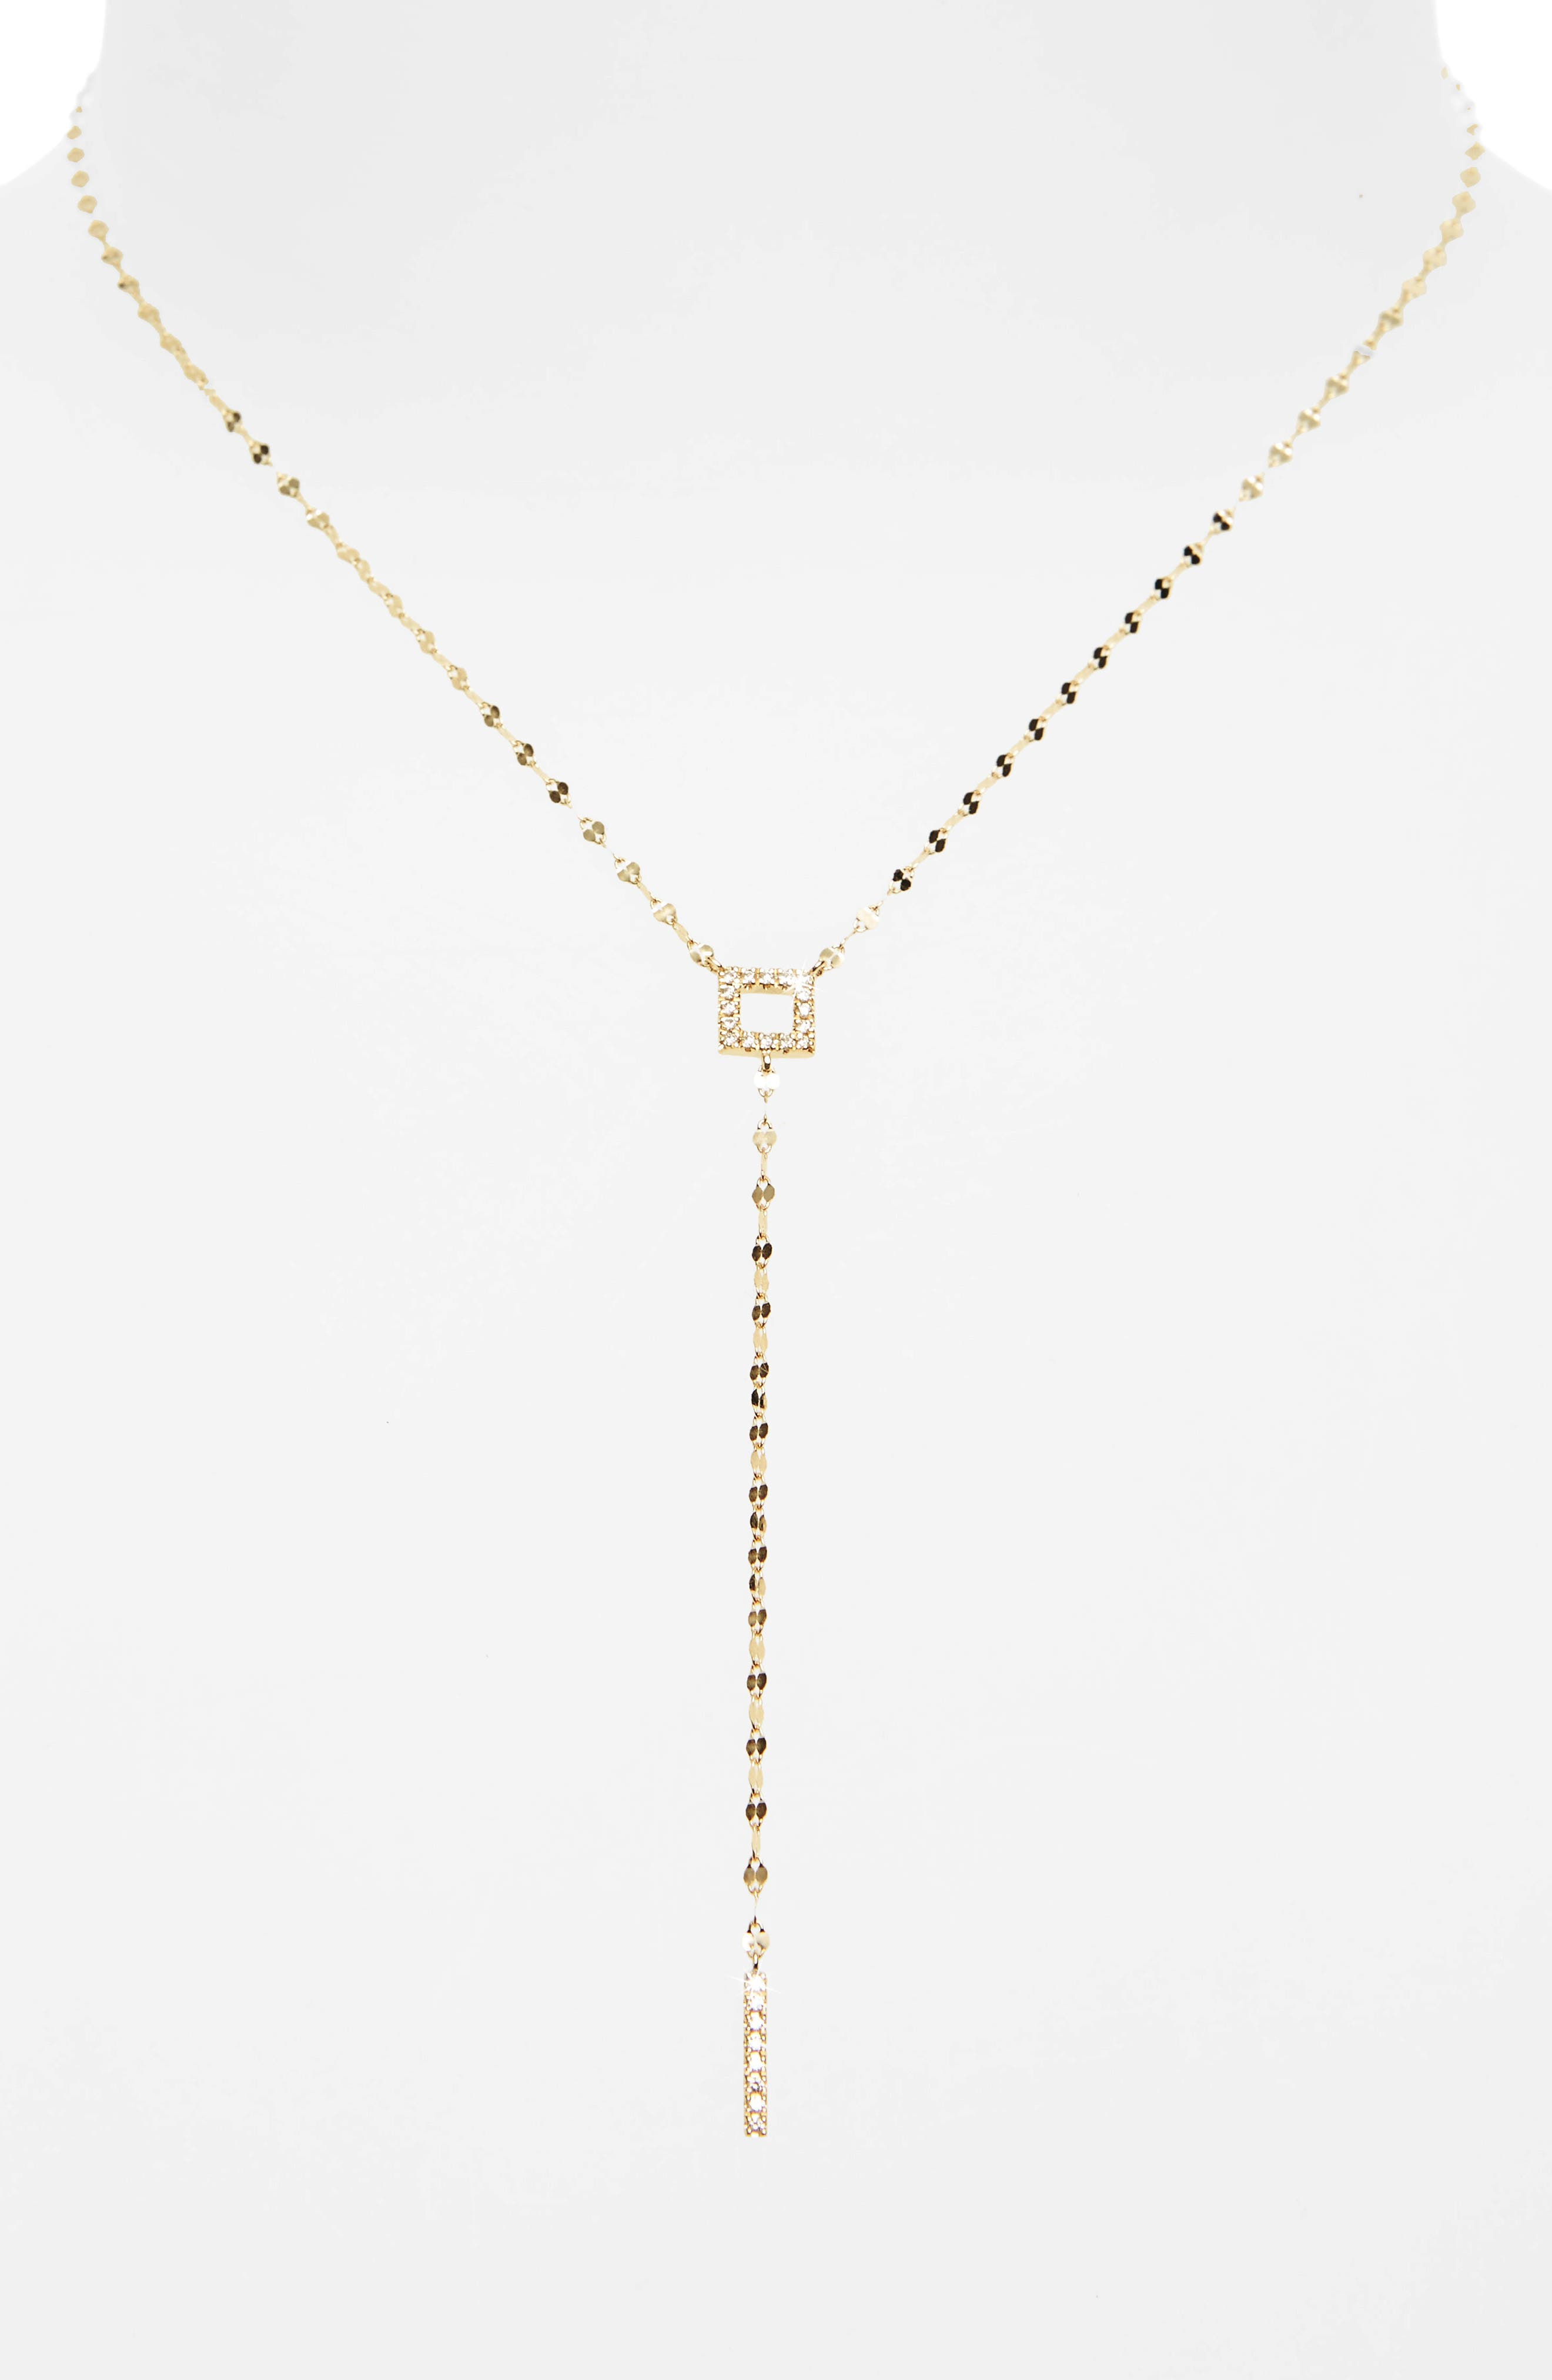 Lana Jewelry Flawless Mini Diamond Bar Necklace NwrvQrx